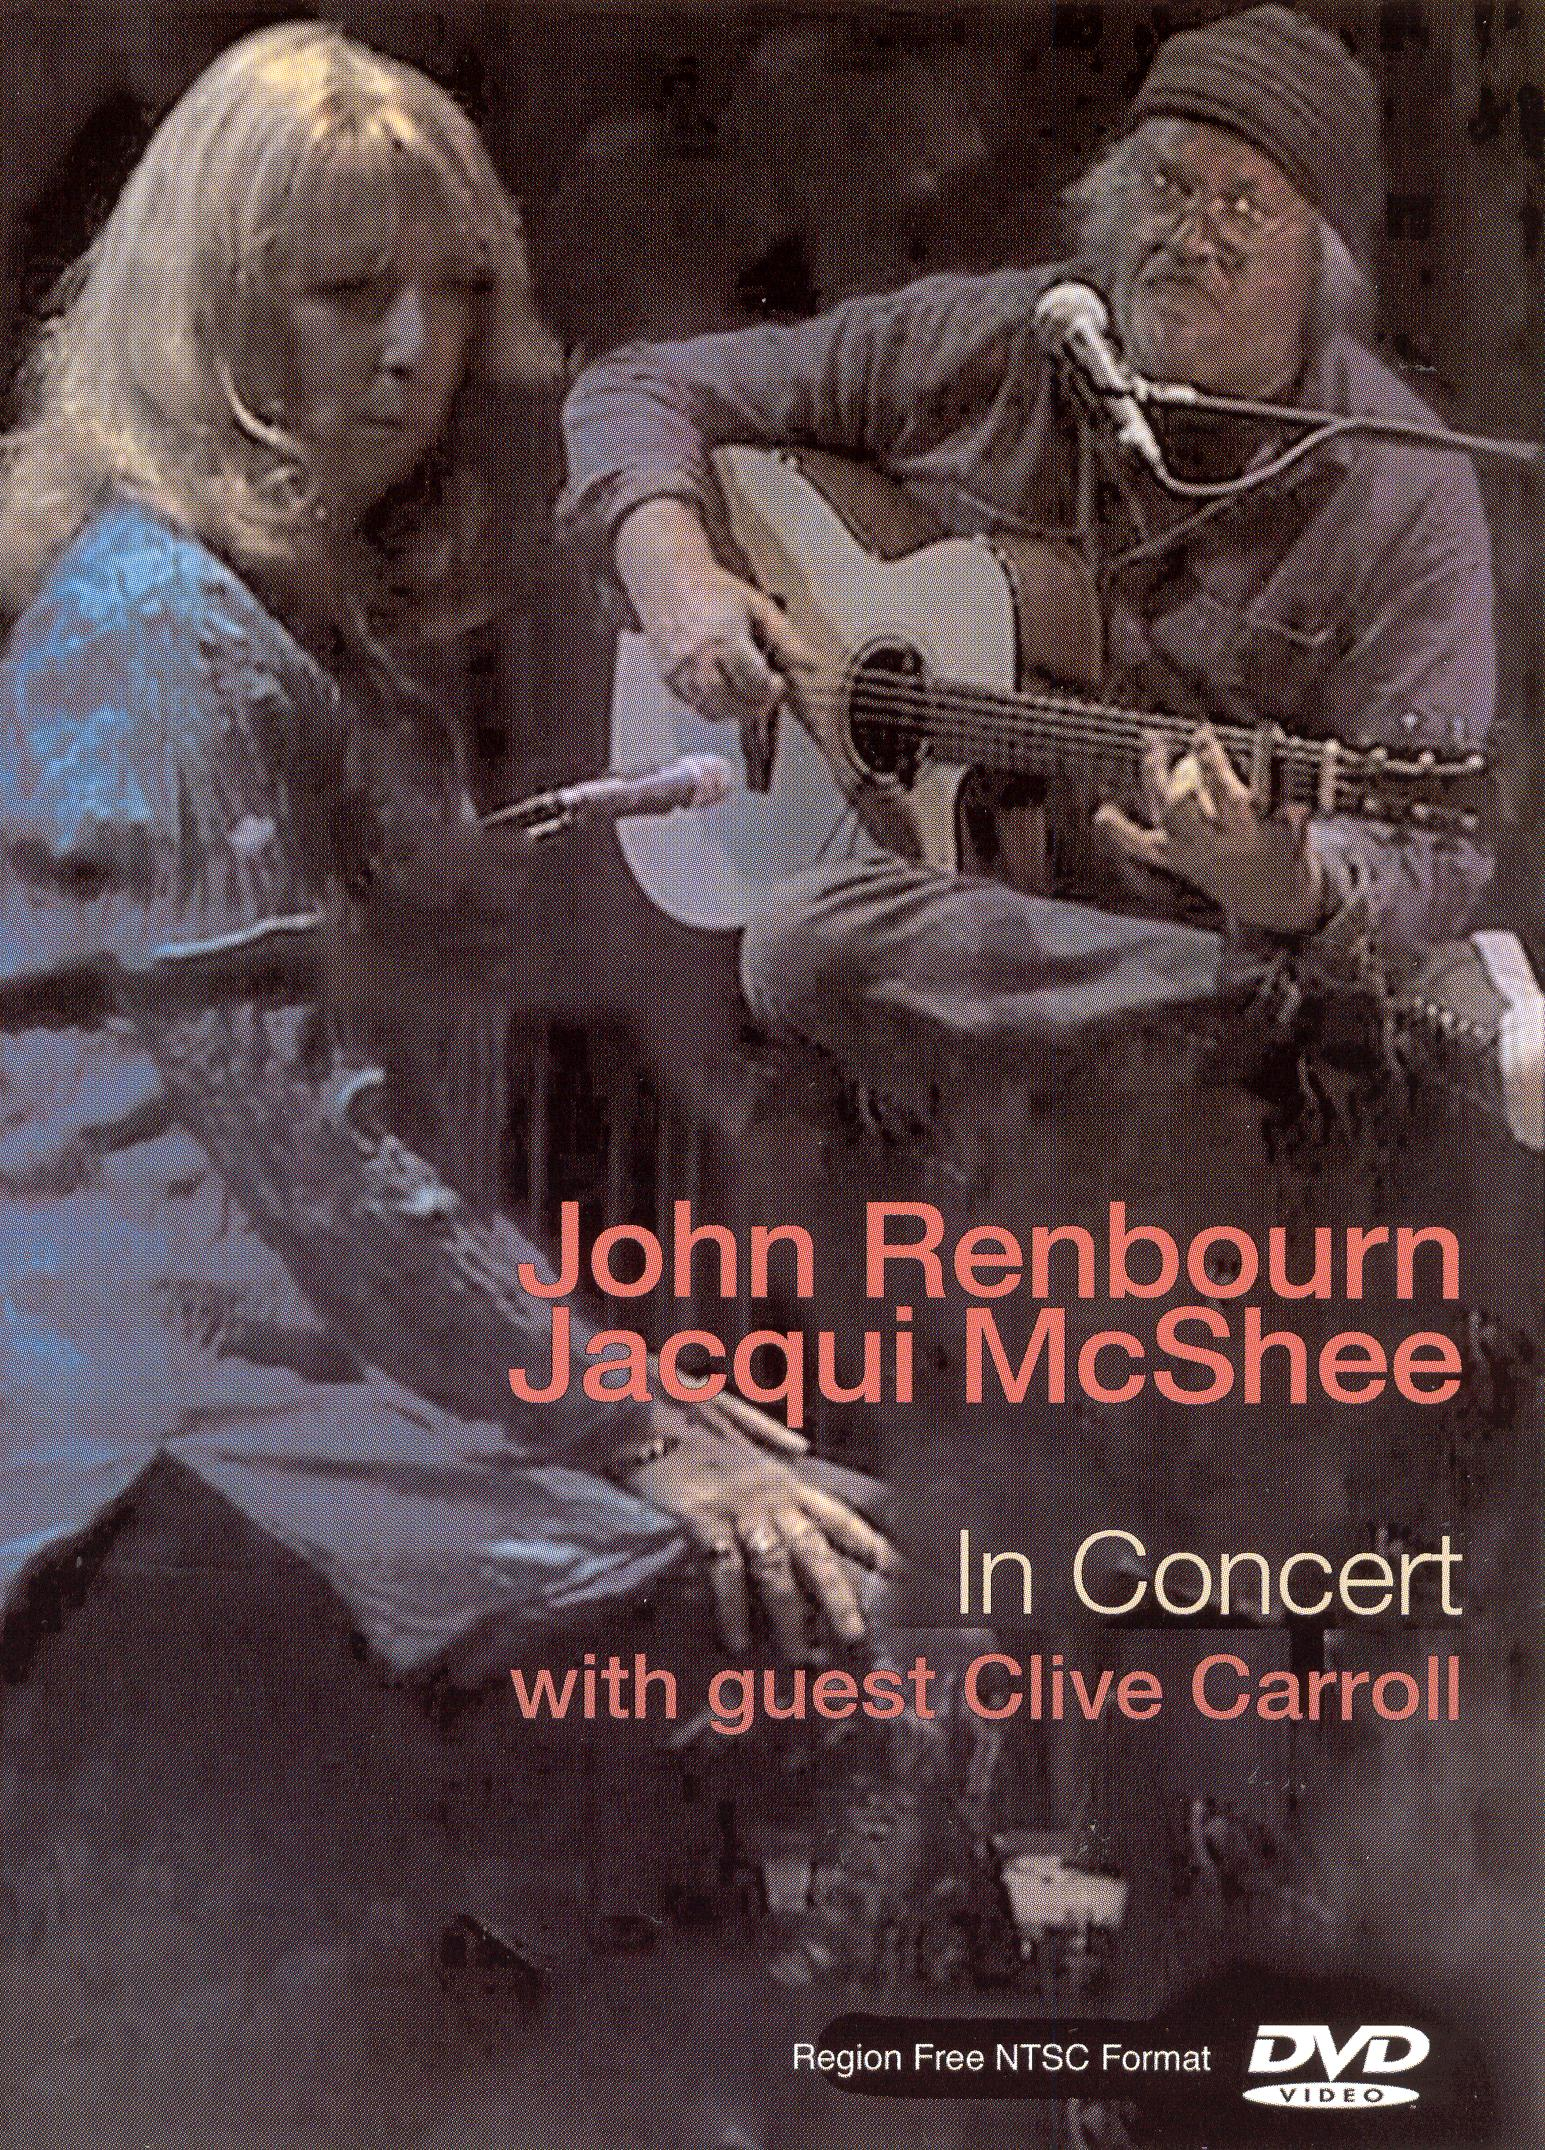 John Renbourn and Jacqui McShee: In Concert